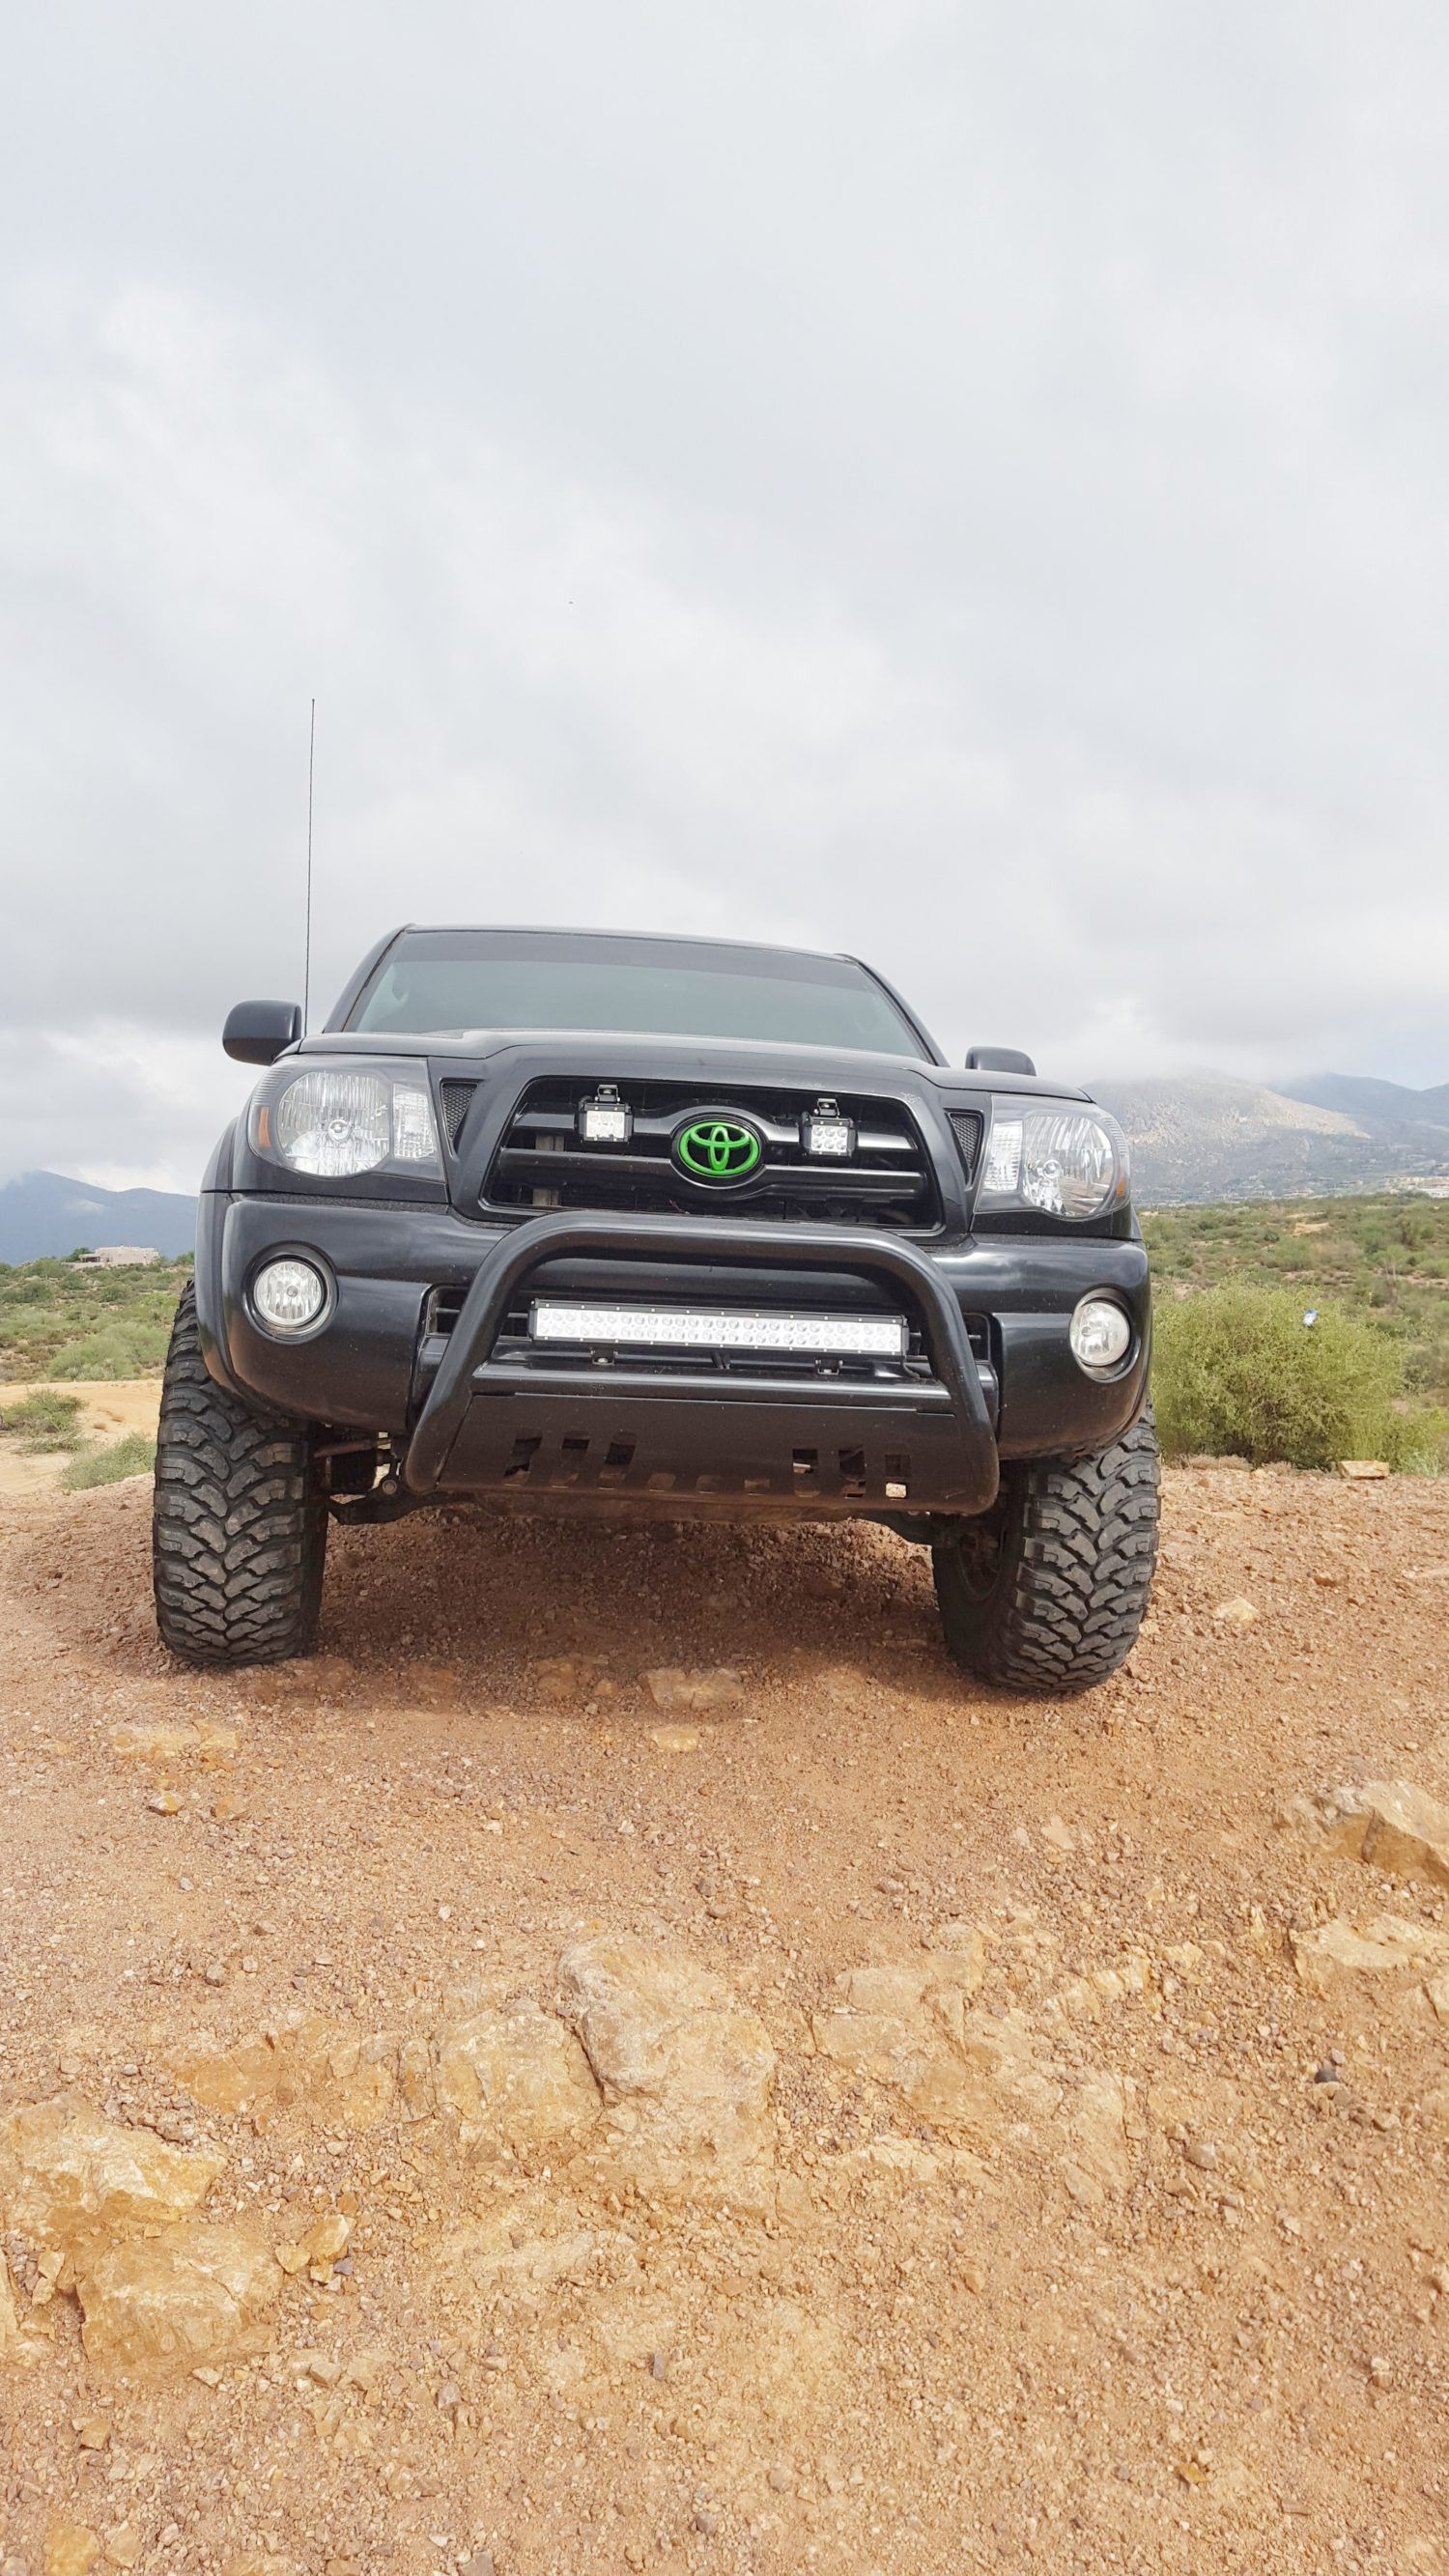 Nilight waterproof light bar 25 inch 162 watt led review toyota if you are looking for an off road light bar that is economical and rocks a bright beam nilights flood spot combo light bar might be the one for you aloadofball Gallery